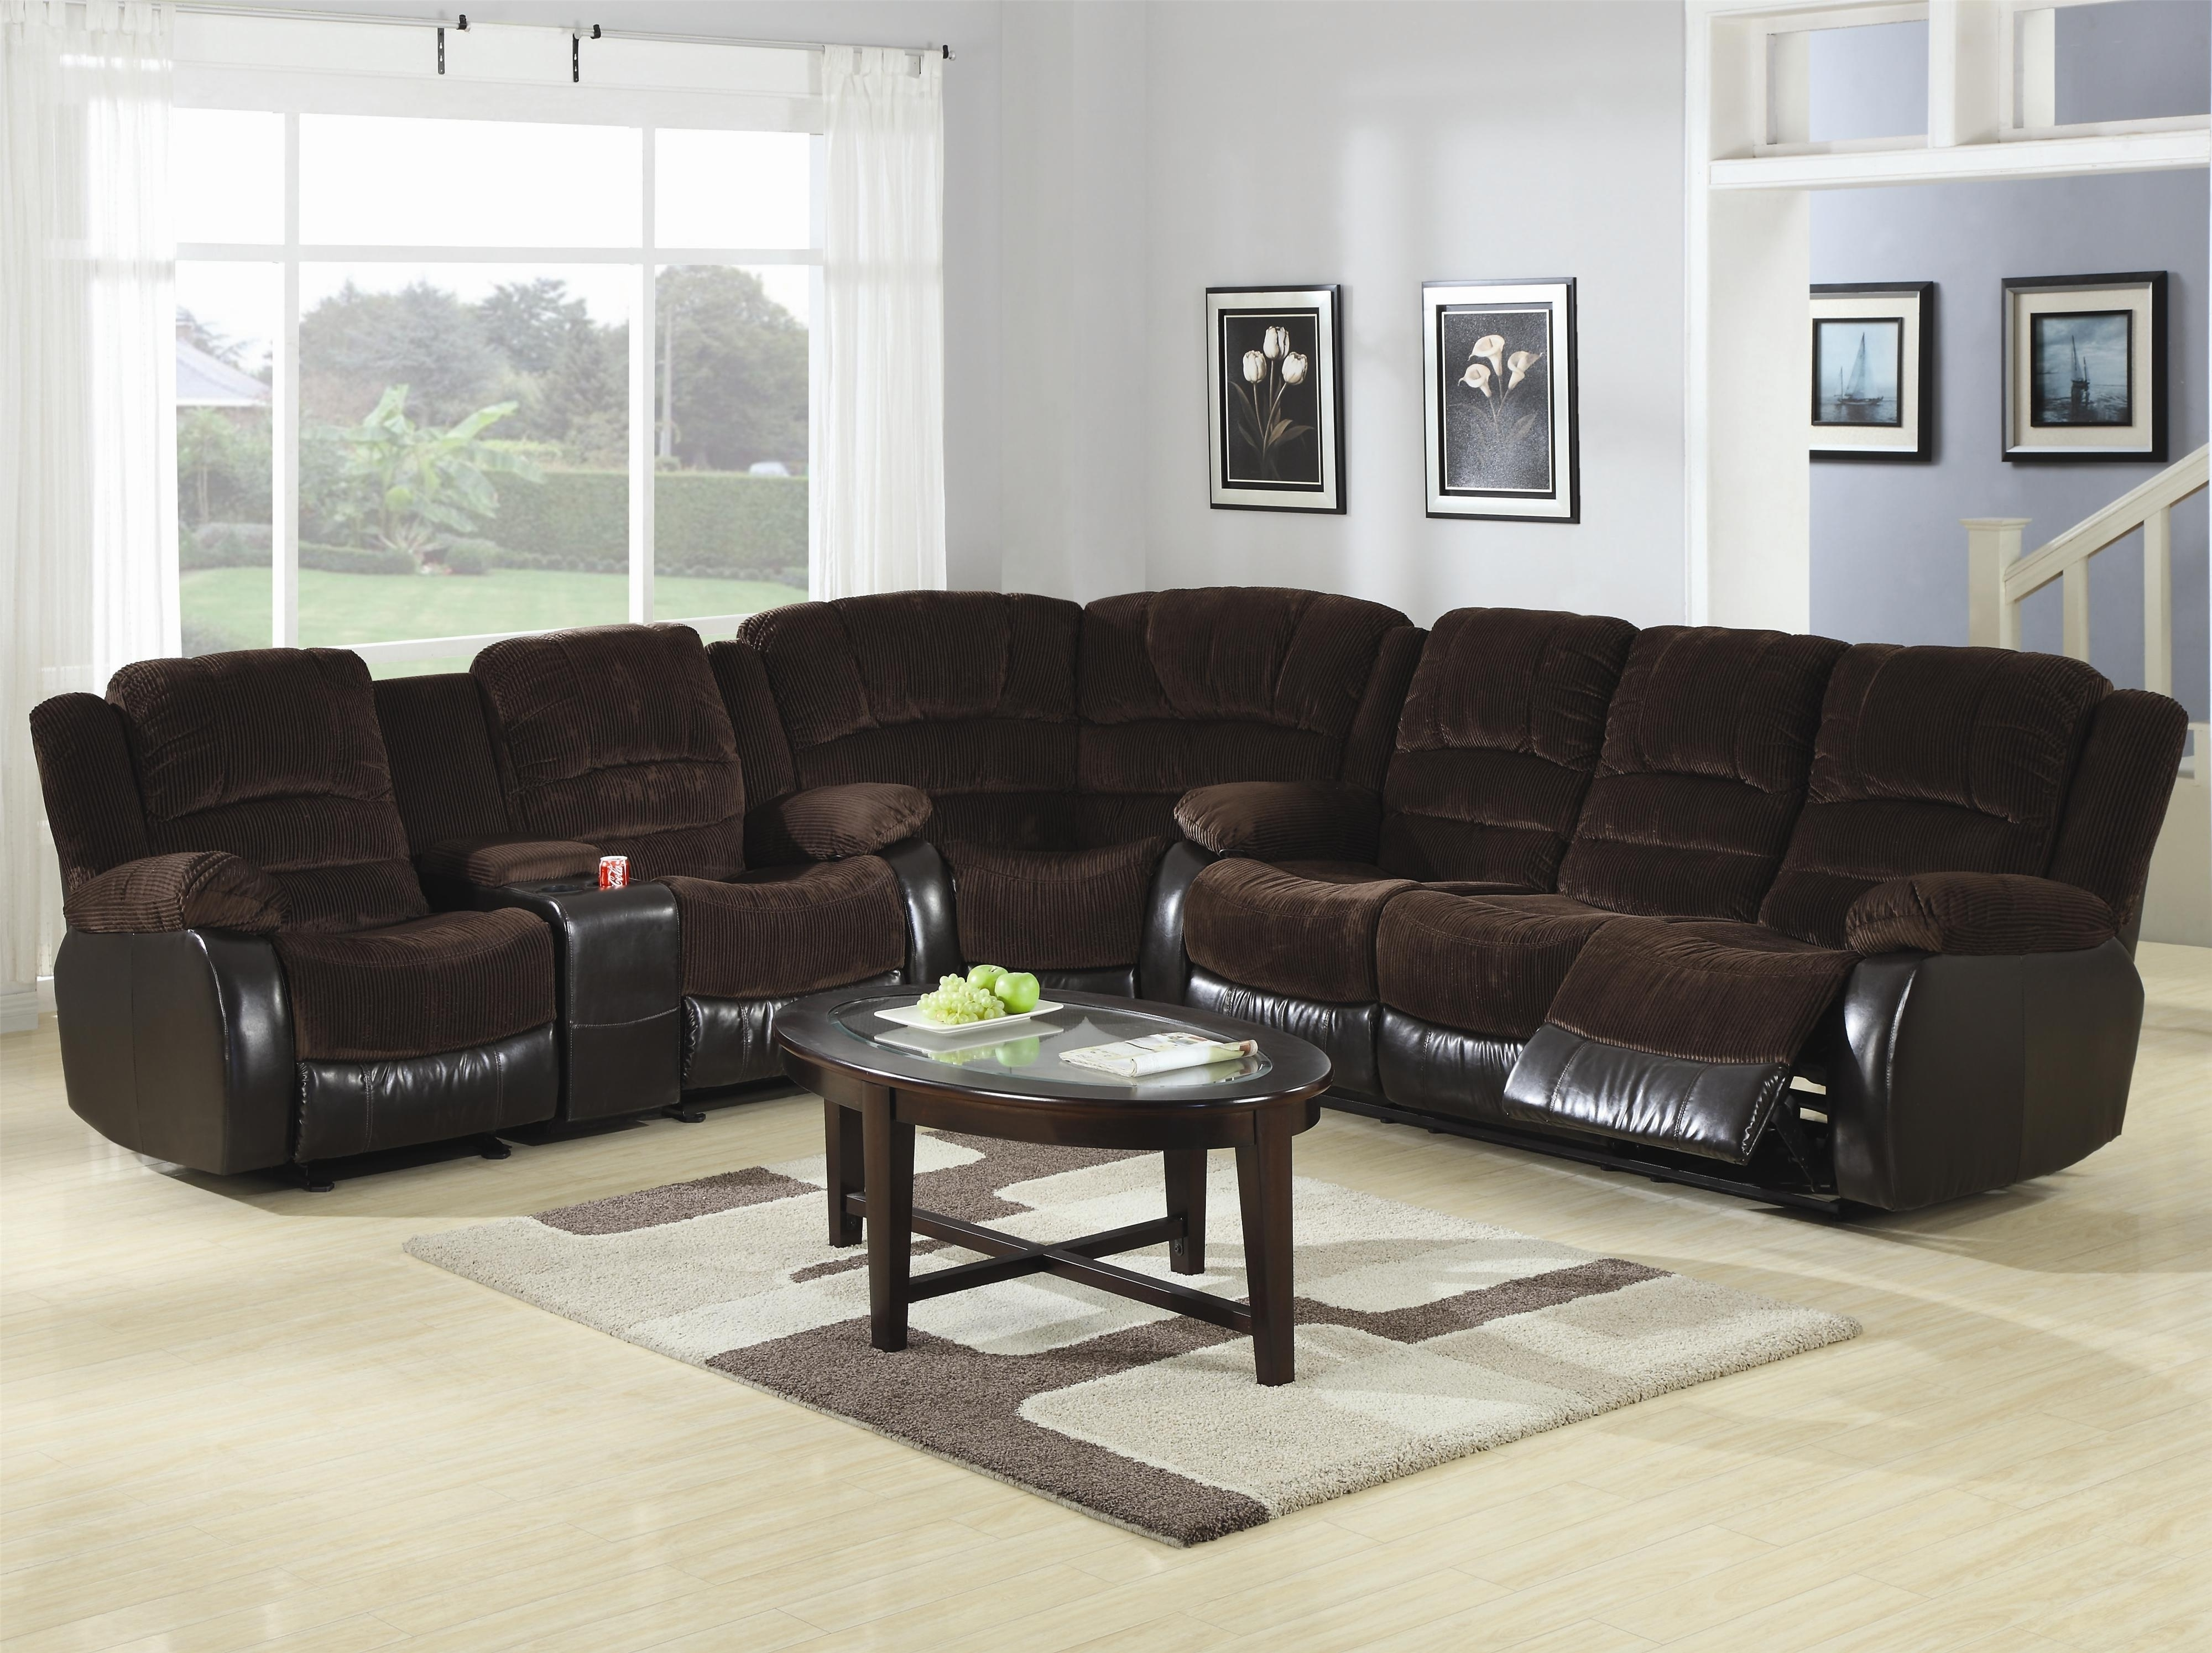 Widely Used Sofa : Amazing Braxton Sectional Sofa Beautiful Home Design Throughout Braxton Sectional Sofas (View 7 of 20)